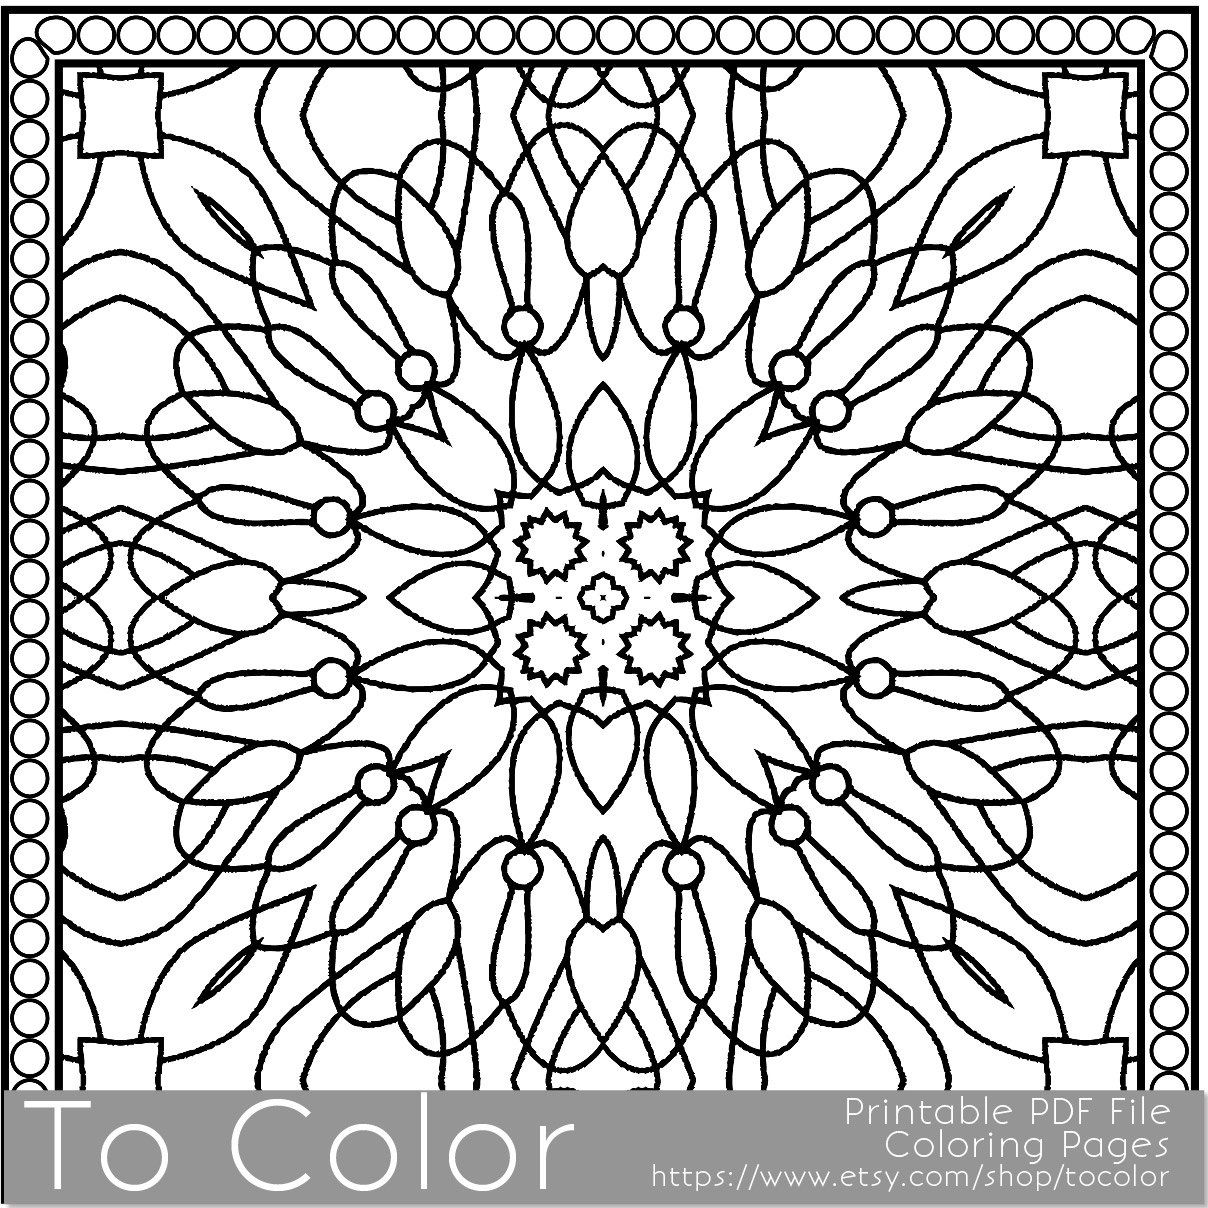 Printable coloring pages etsy - Printable Coloring Pages For Adults Square Coloring Pattern Pdf Jpg Instant Download